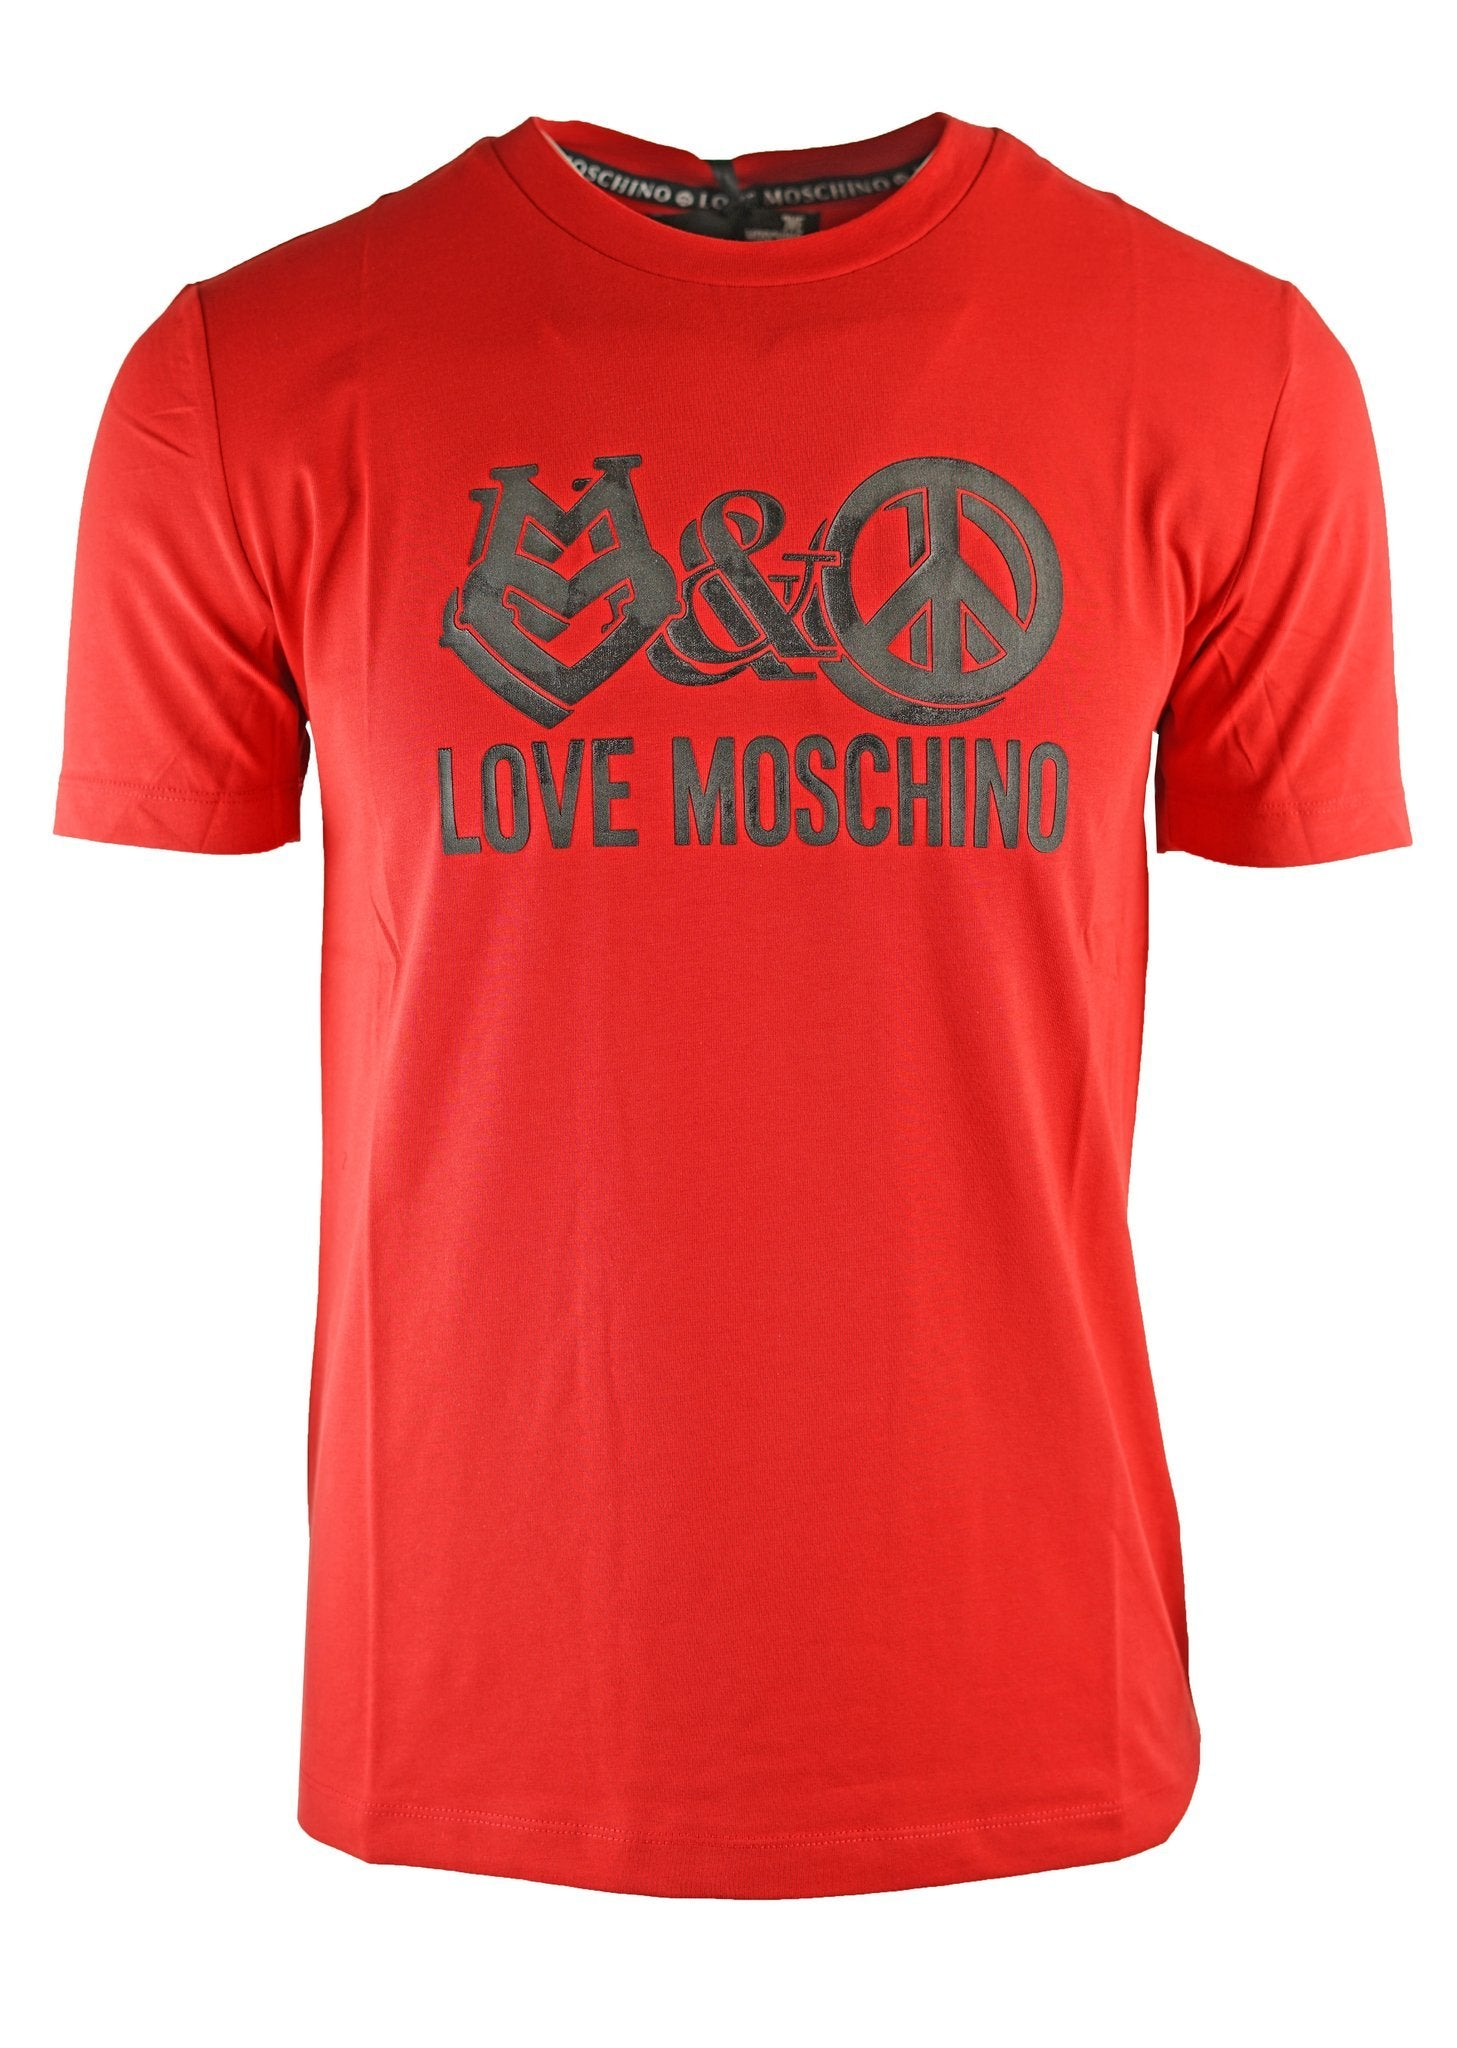 Love Moschino T-Shirt M 4 731 56 E 1811 P00